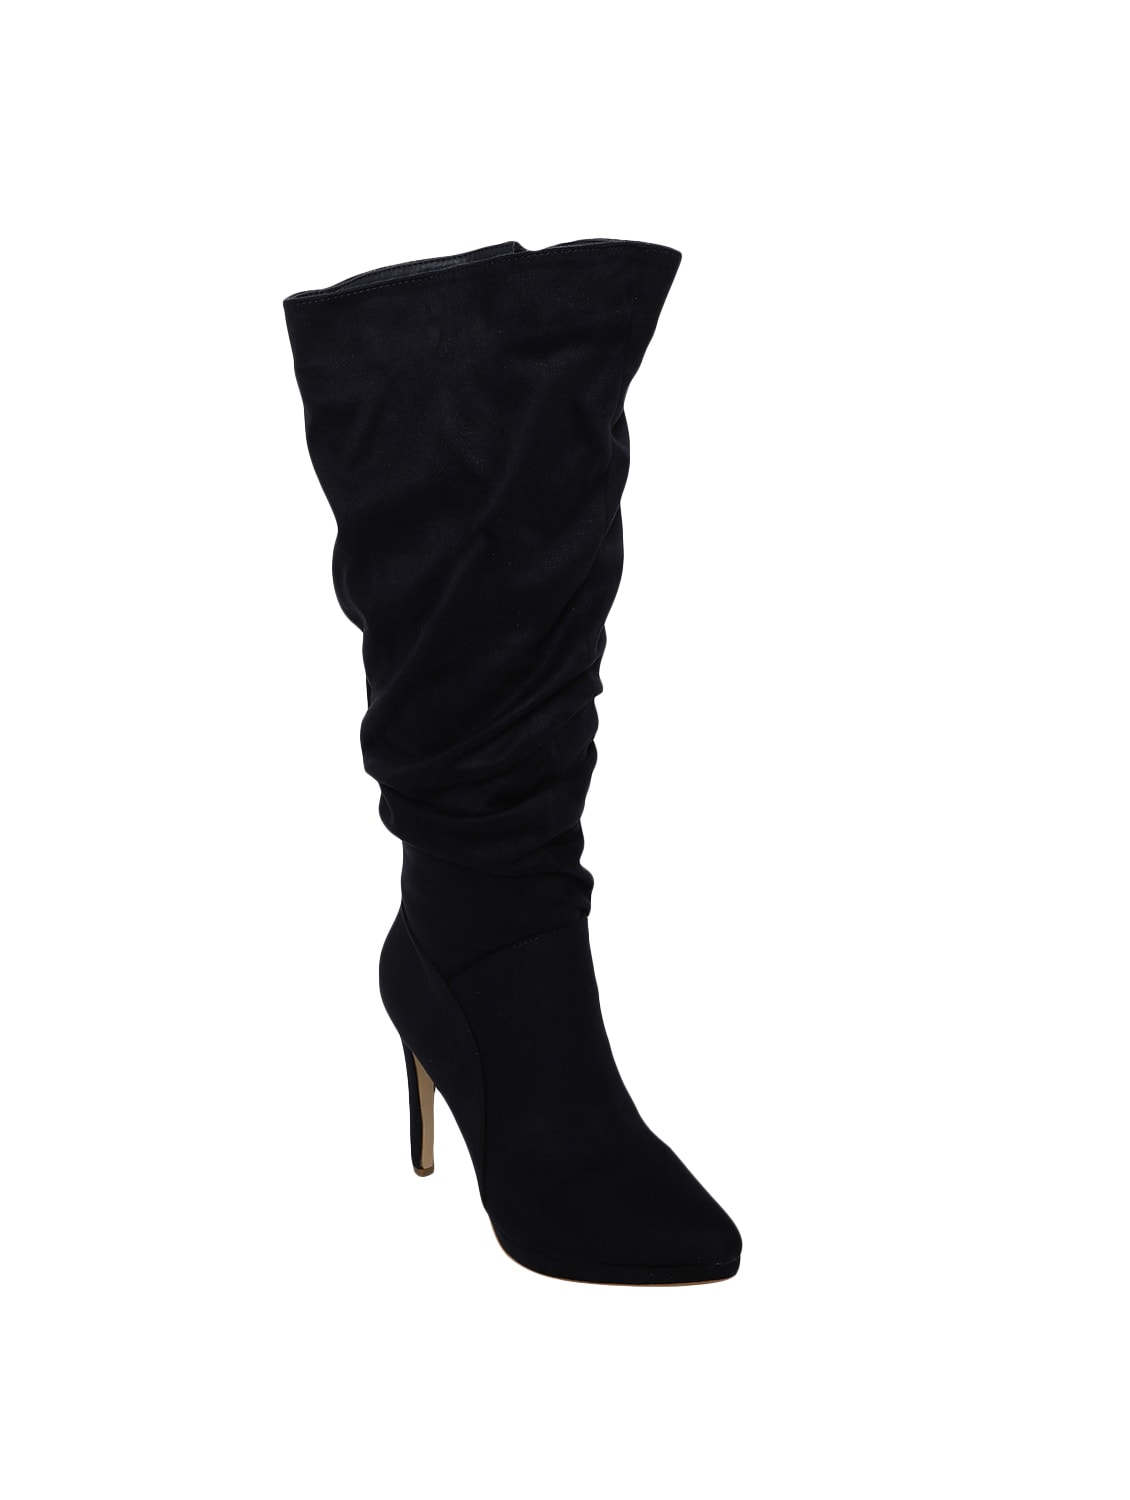 Buy online Navy Knee Length Boots from